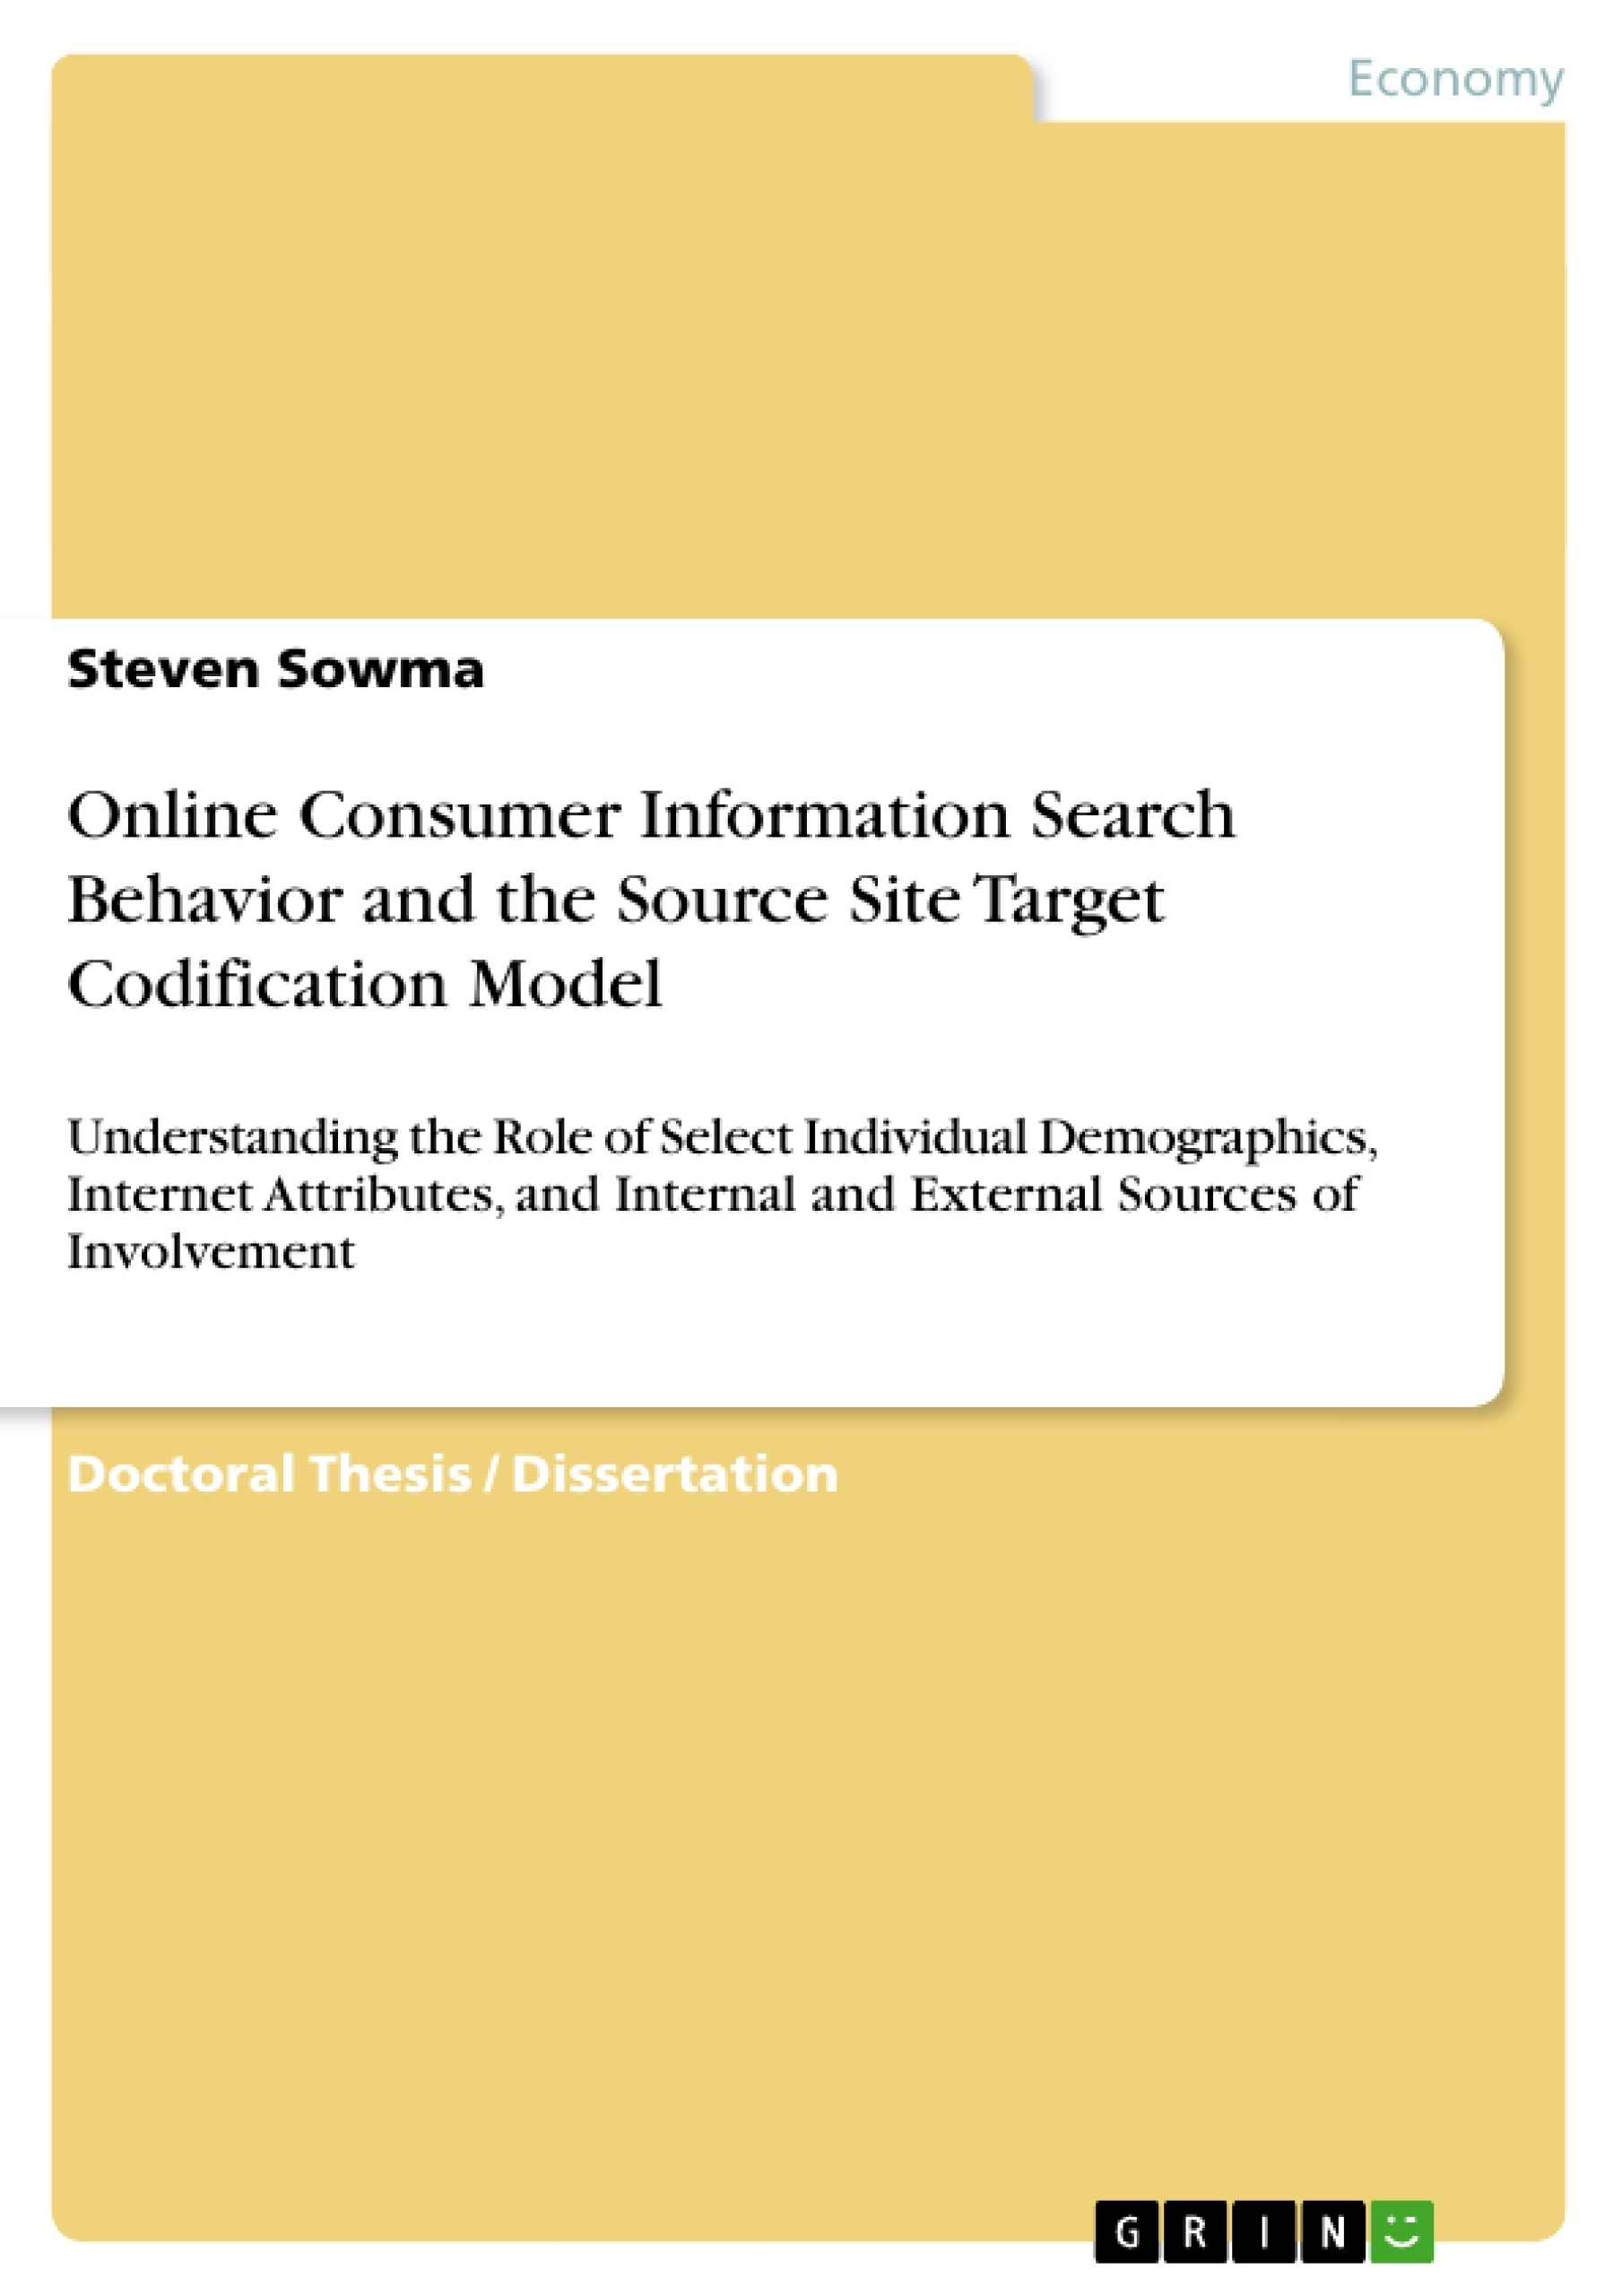 Title: Online Consumer Information Search Behavior and the Source Site Target Codification Model